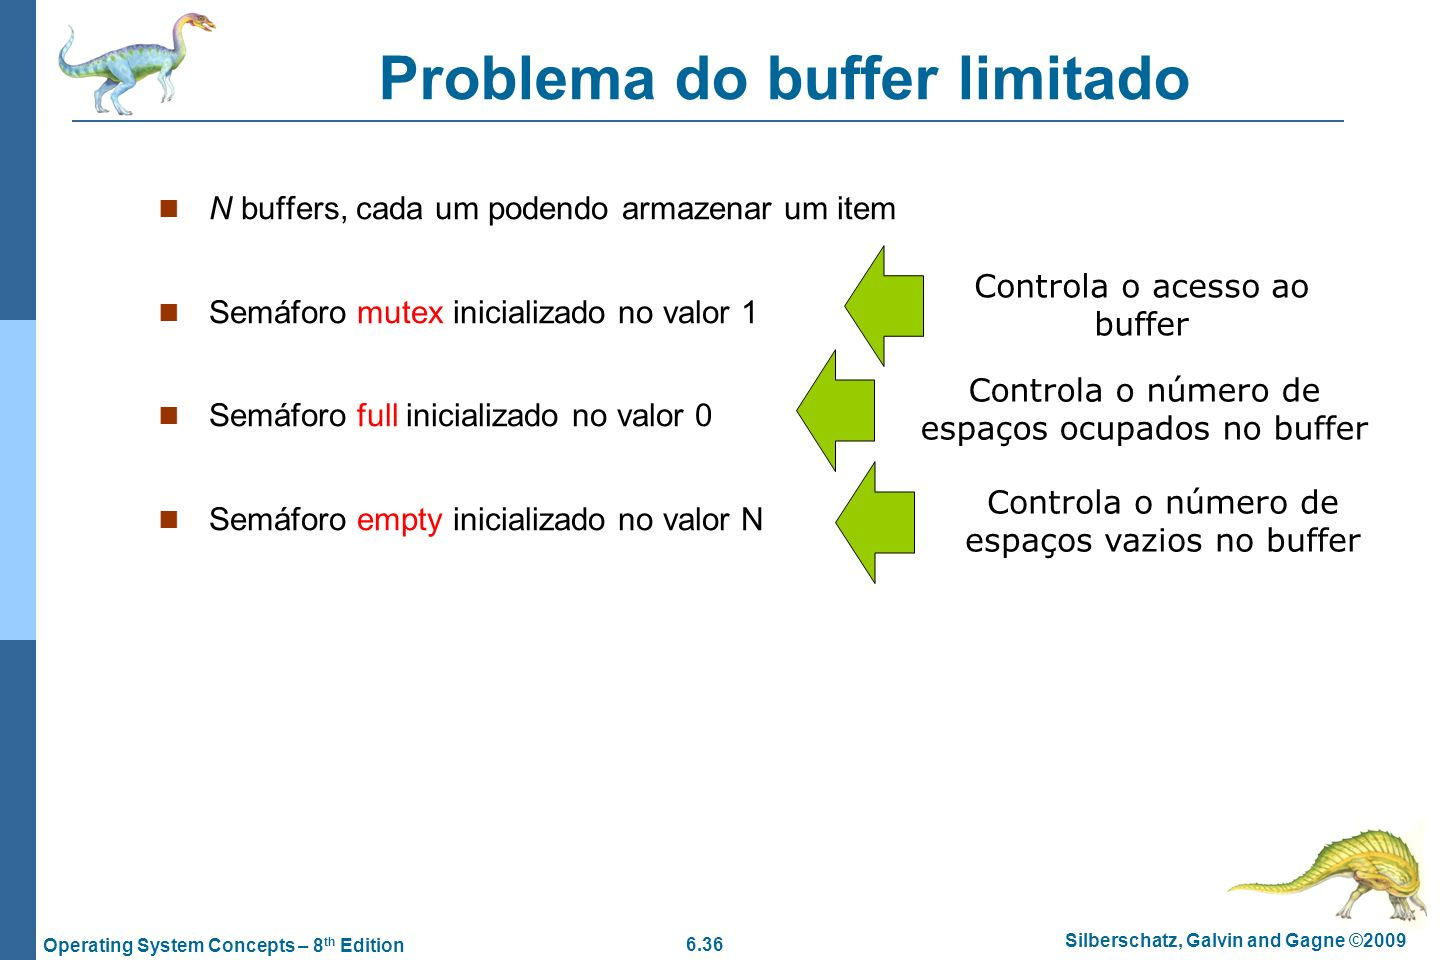 6.36 Silberschatz, Galvin and Gagne ©2009 Operating System Concepts – 8 th Edition Problema do buffer limitado N buffers, cada um podendo armazenar um